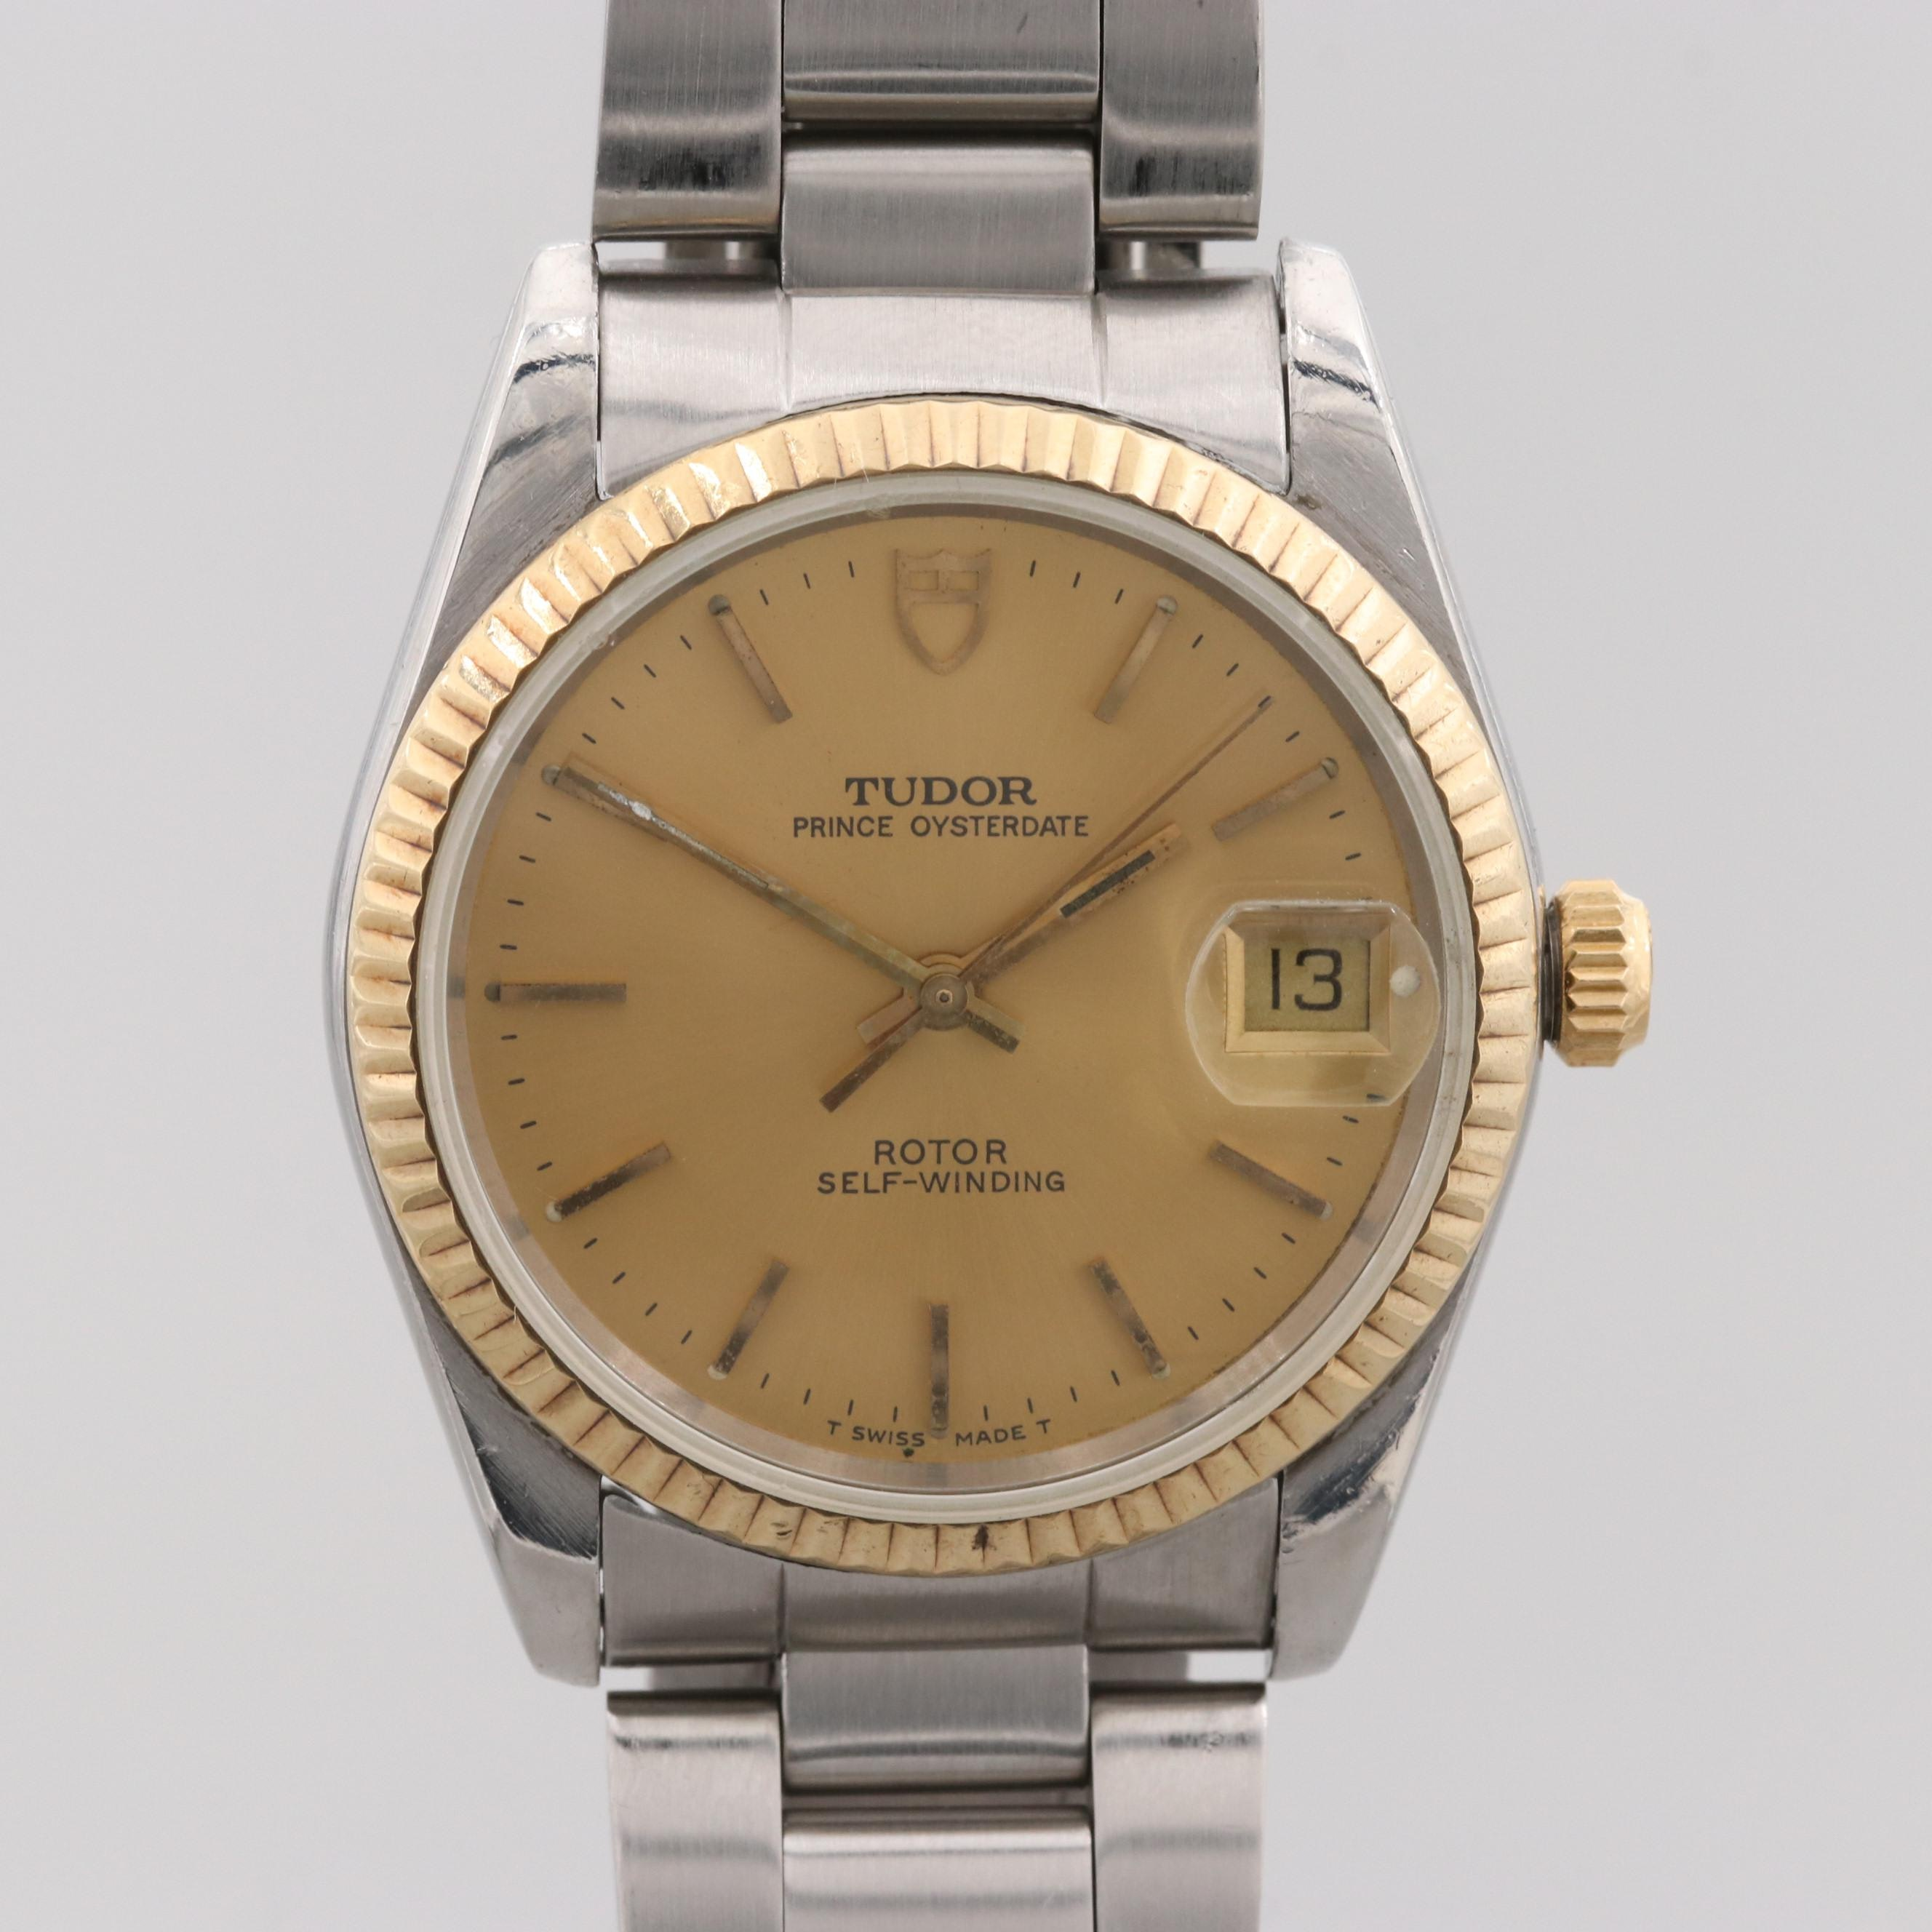 Vintage Tudor Prince Oyster Date Stainless Steel and 18K Yellow Gold Wristwatch